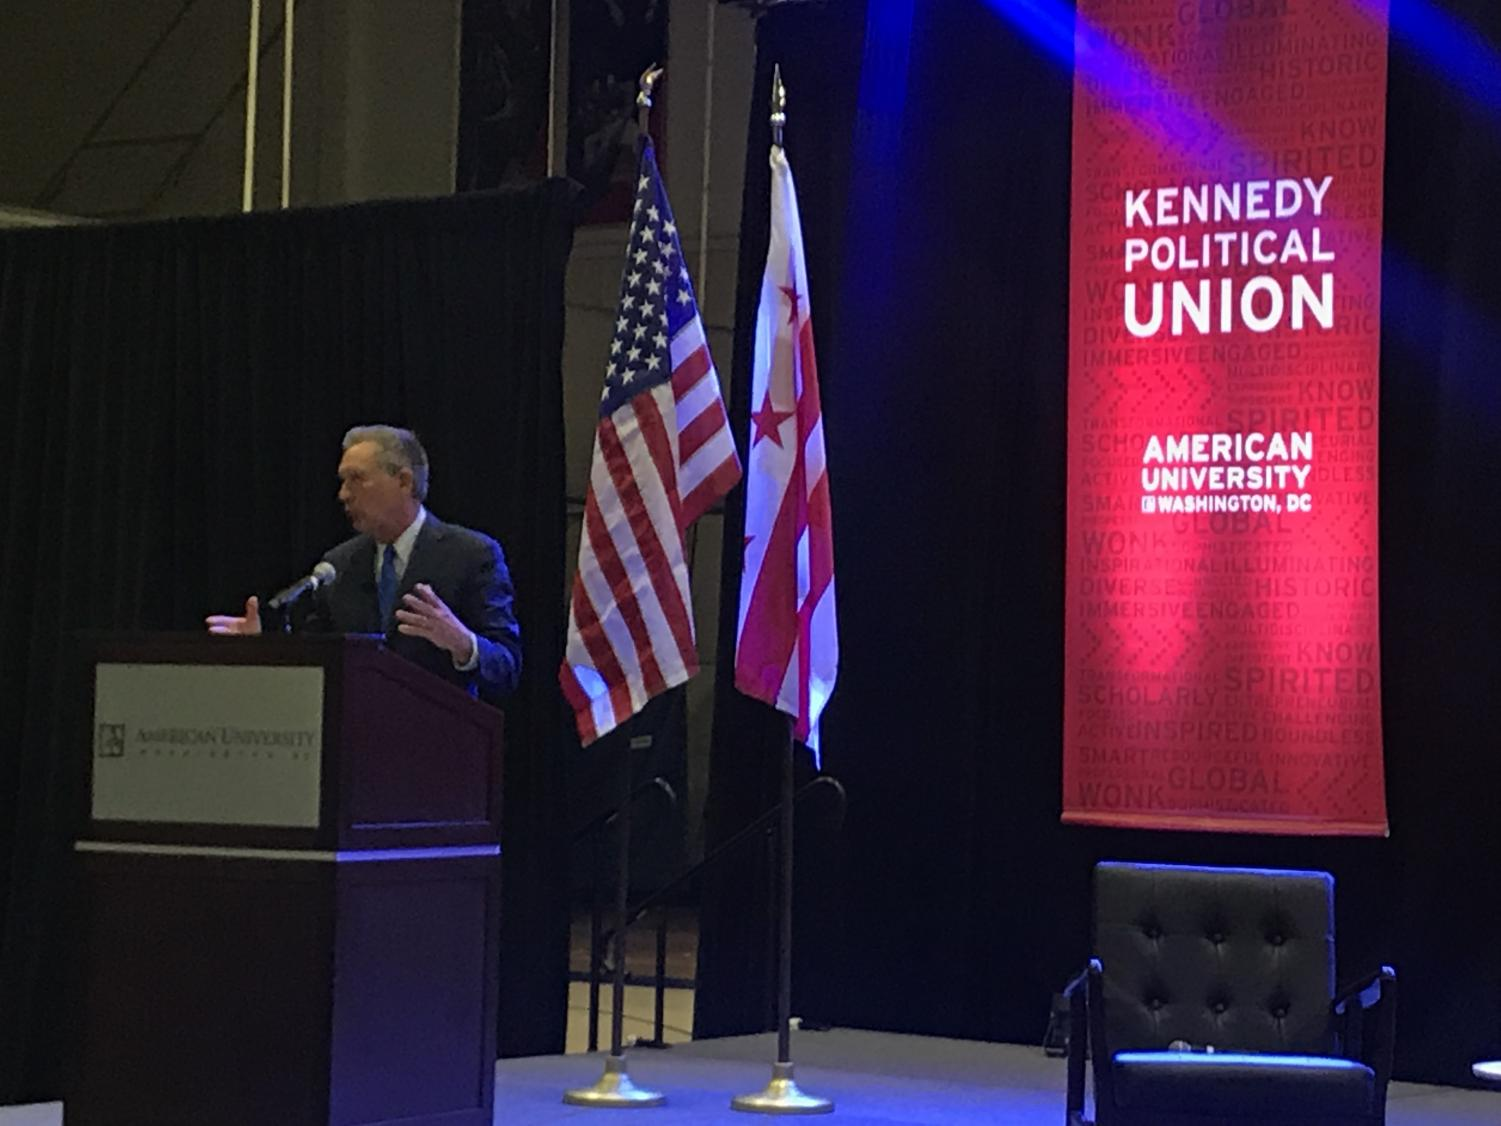 The student-run Kennedy Political Union (KPU) and AU College Republicans cosponsored The Wonk of the Year event on March 21, awarded to John Kasich.